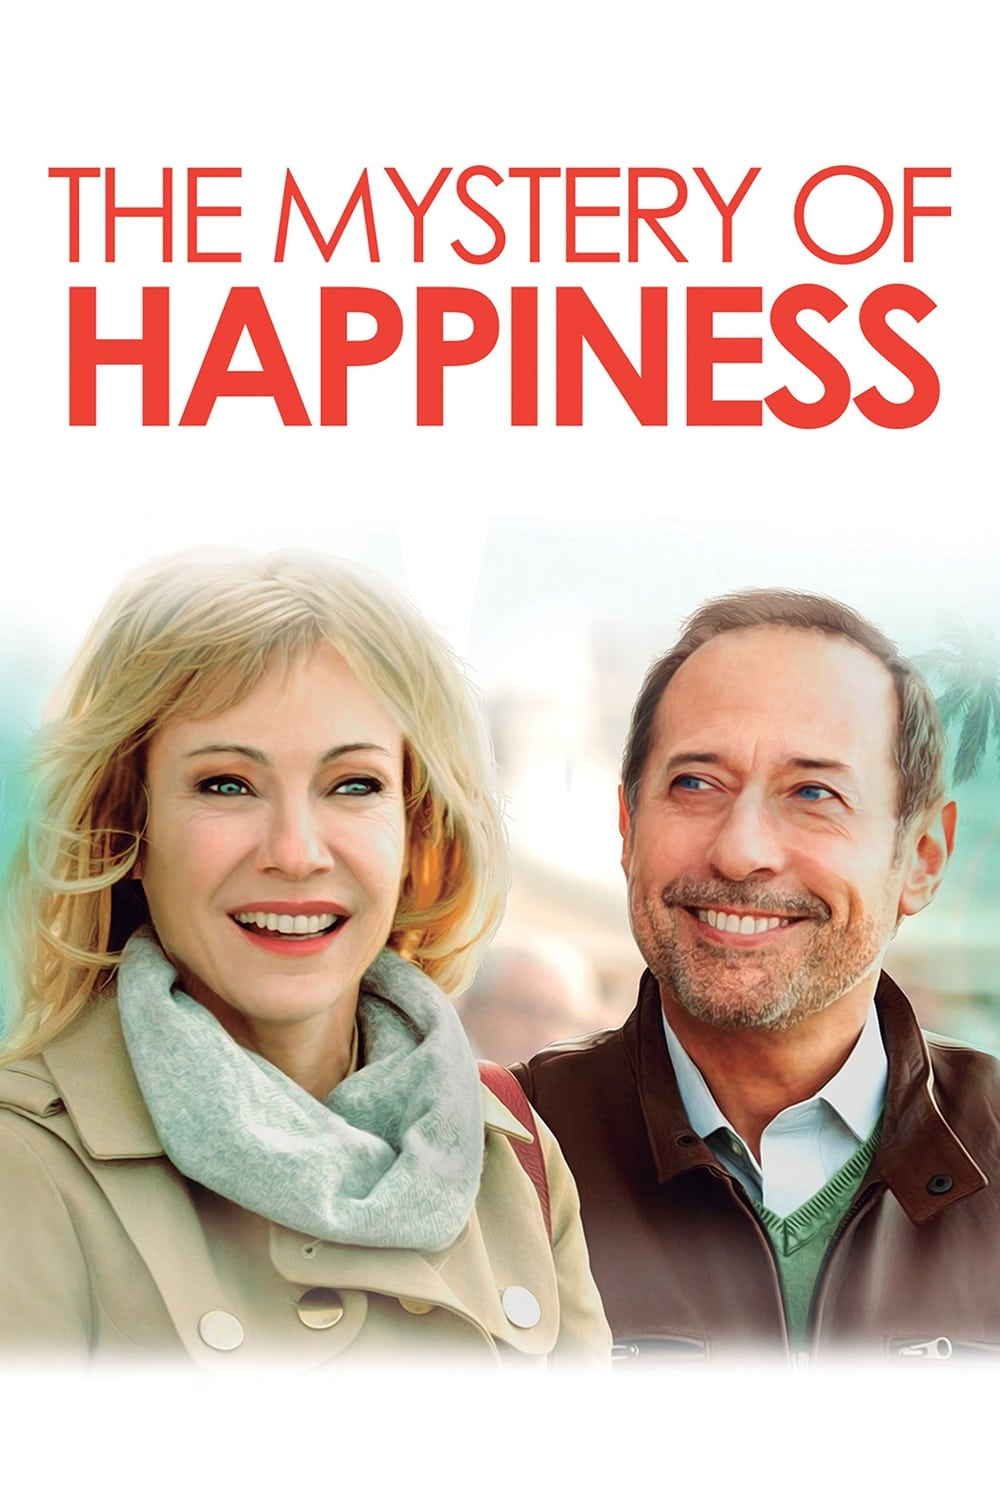 The Mystery of Happiness